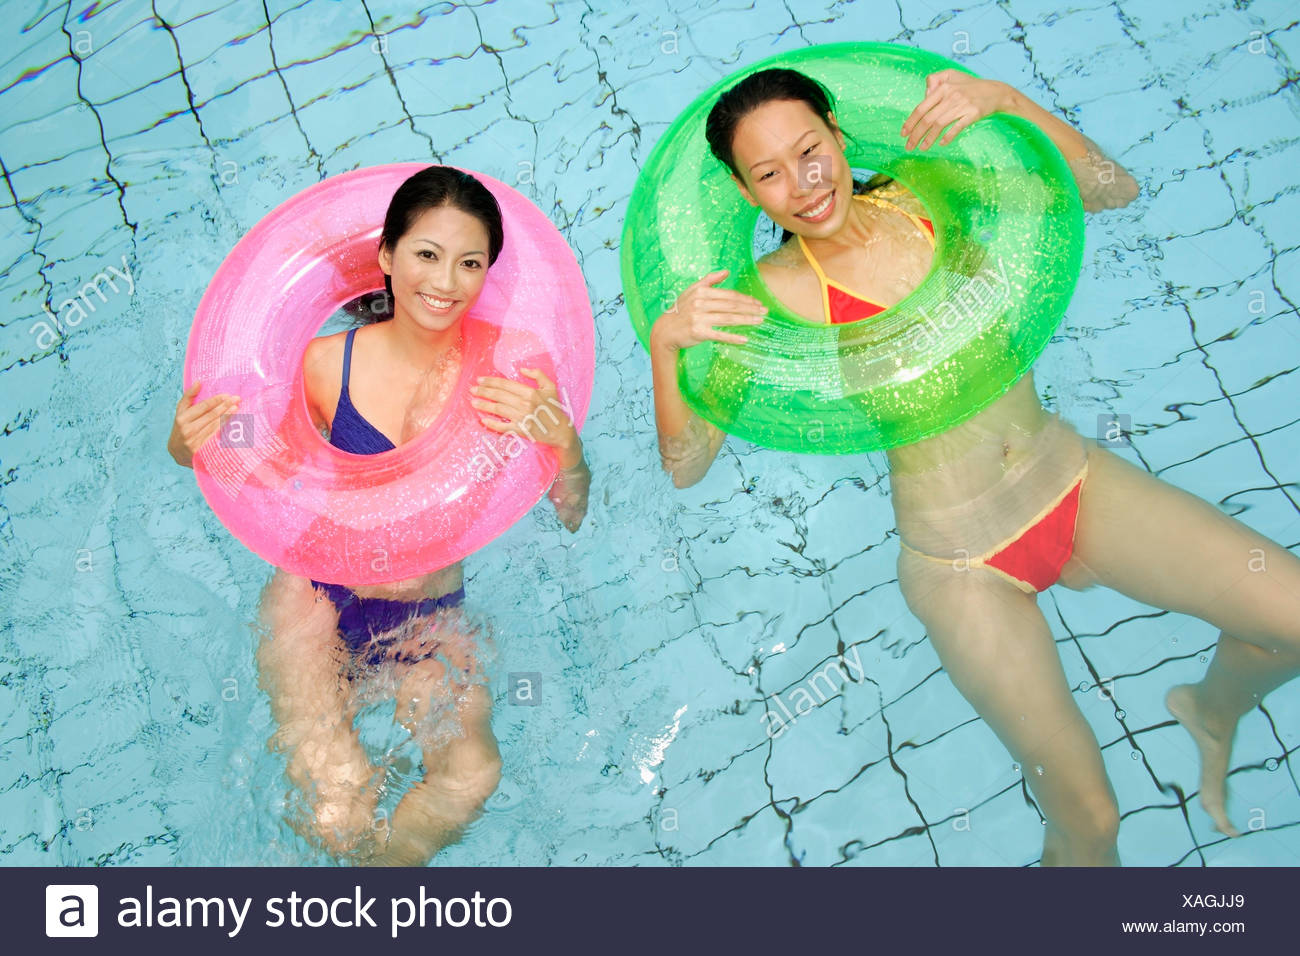 Women in swimming pool, using inflatable rings, looking at camera Stock Photo